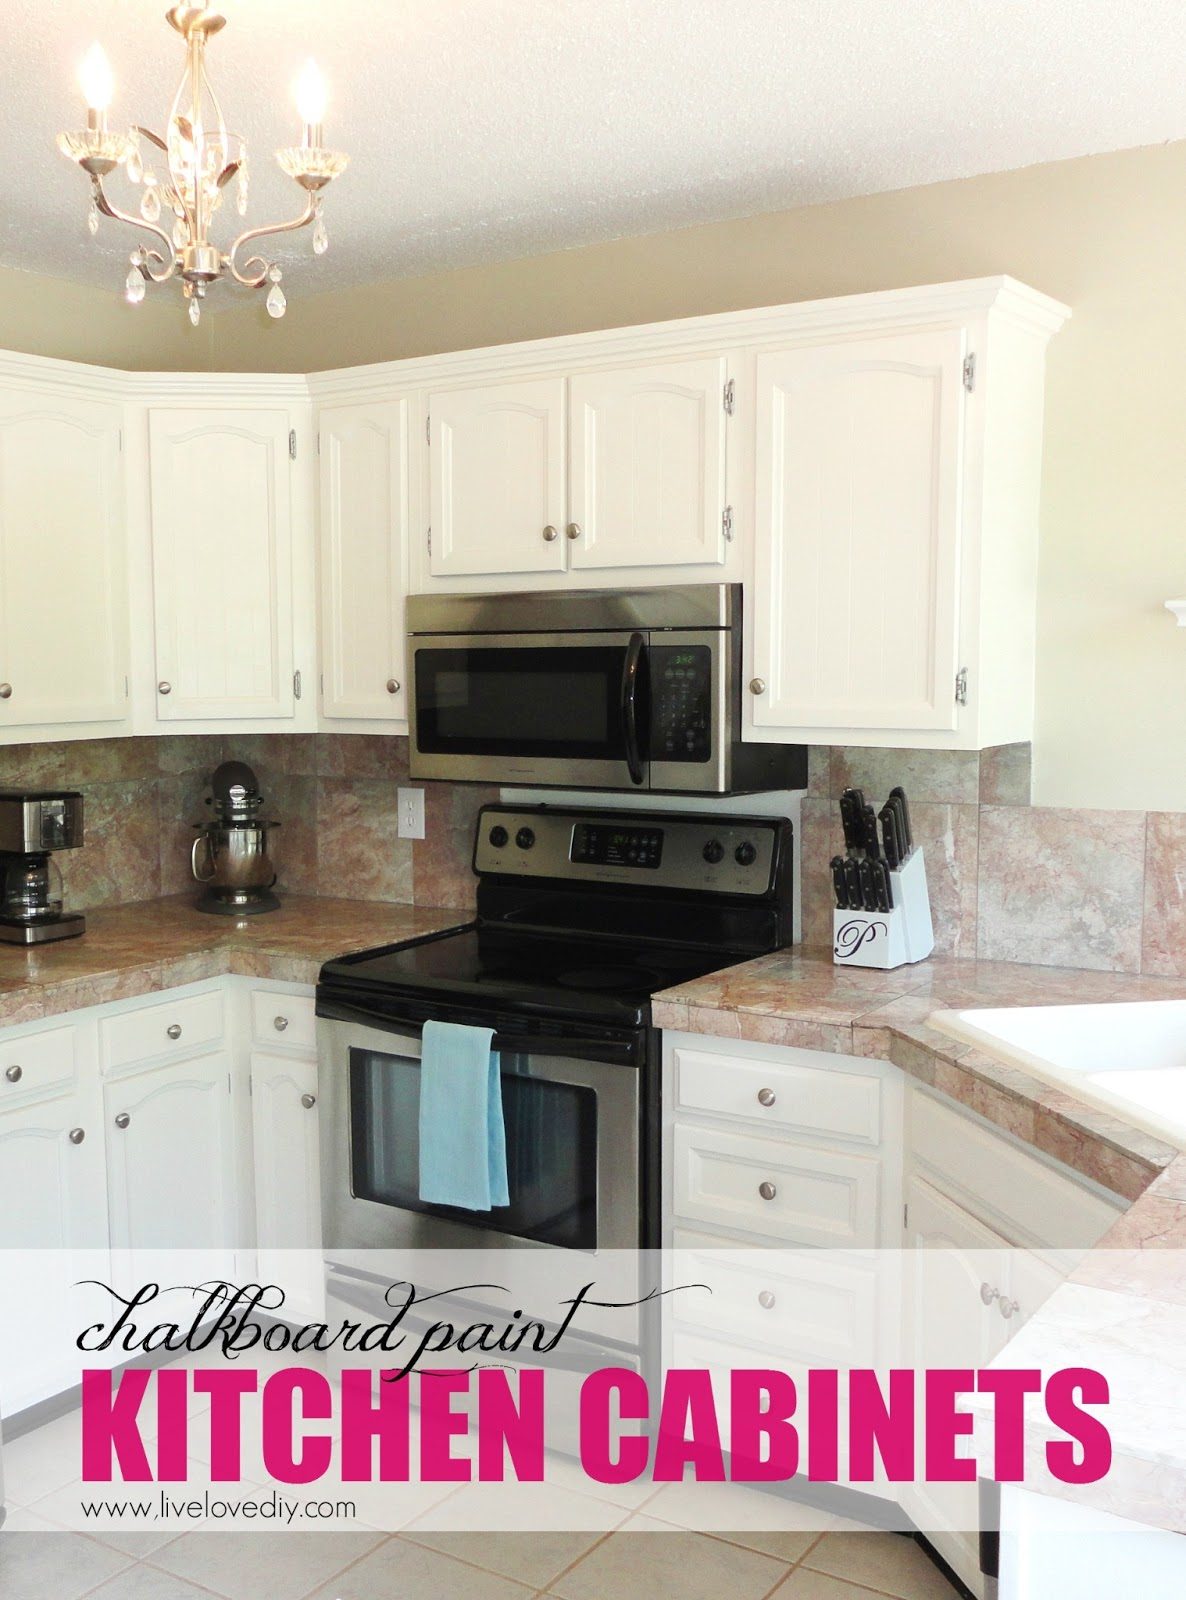 kitchen cabinet chalk paint makeover painting kitchen cabinets white The Chalkboard Paint Kitchen Cabinet Makeover